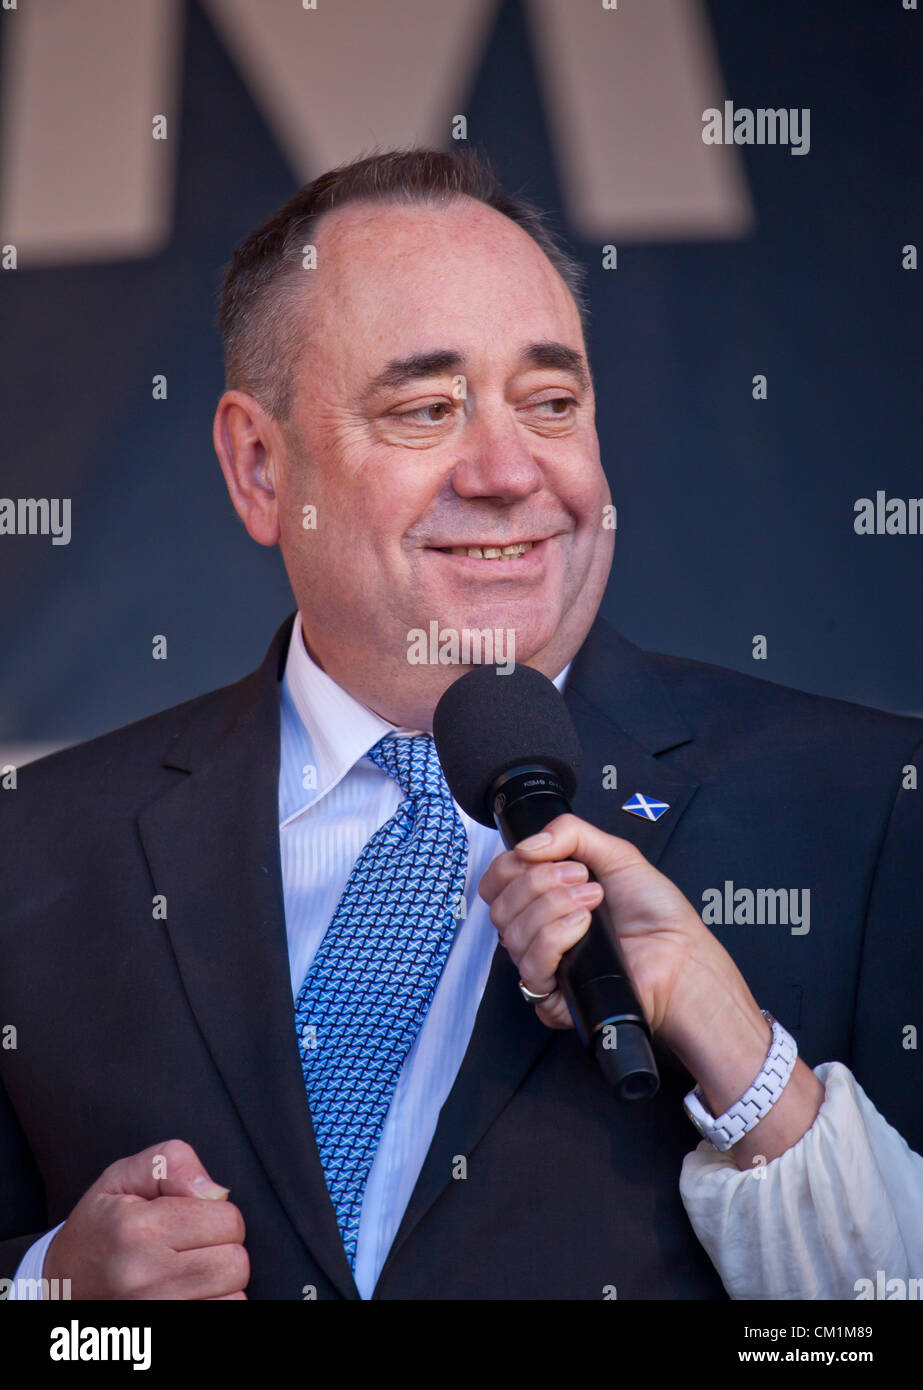 14th September, 2012. Alex Salmond, then First Minister of Scotland, being interviewed at the end of the homecoming Stock Photo